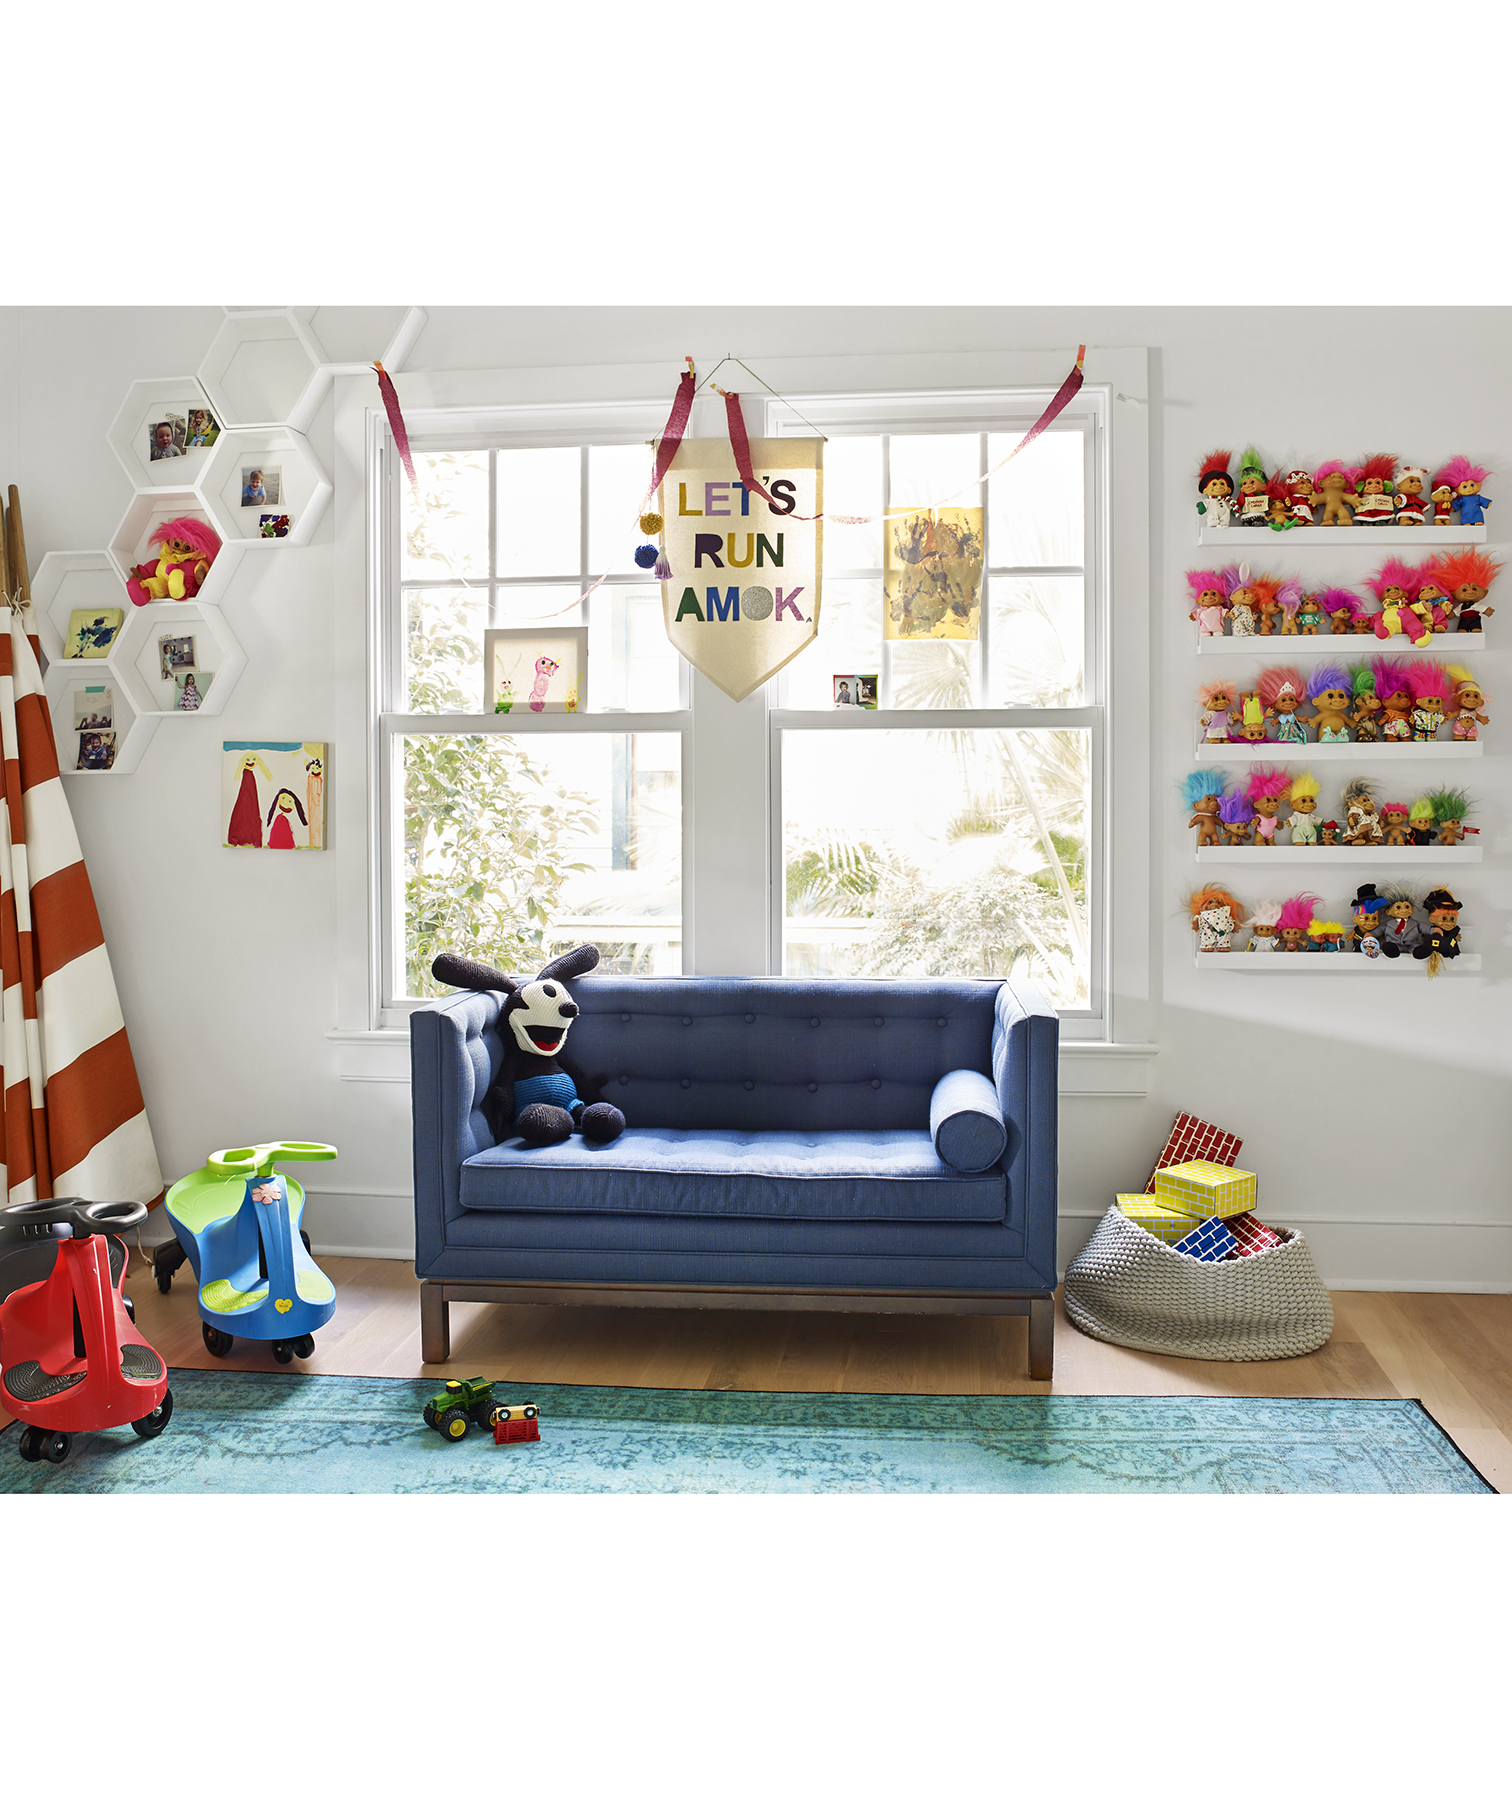 Kids' room with bright colors and trolls